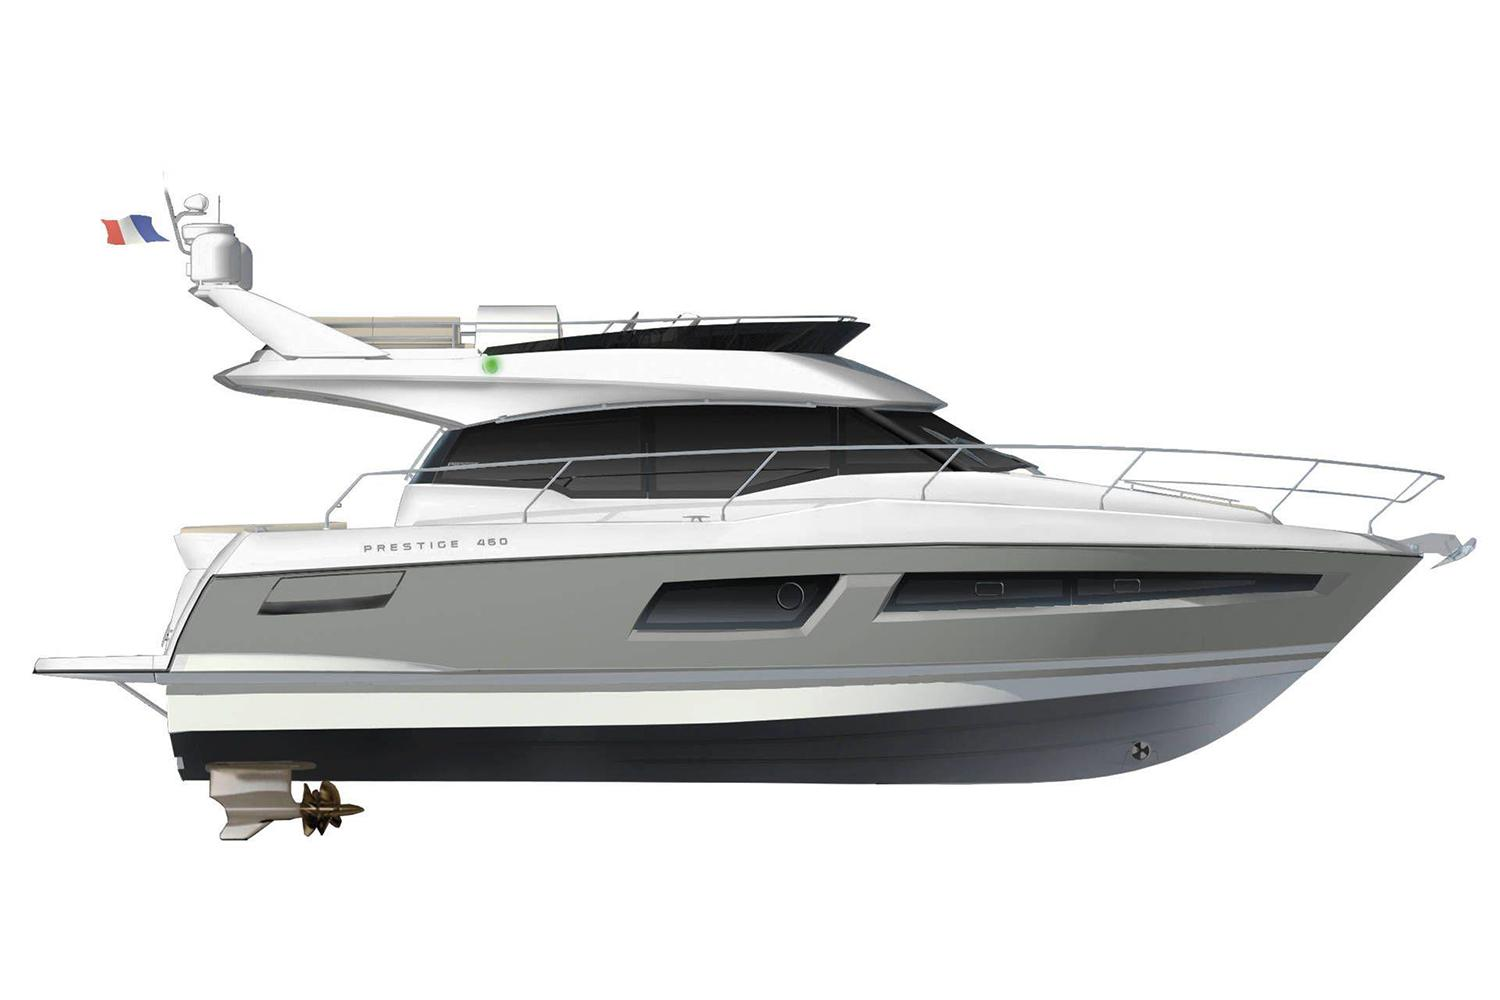 2021 Prestige 460 Fly #75560 inventory image at Sun Country Yachts in Newport Beach